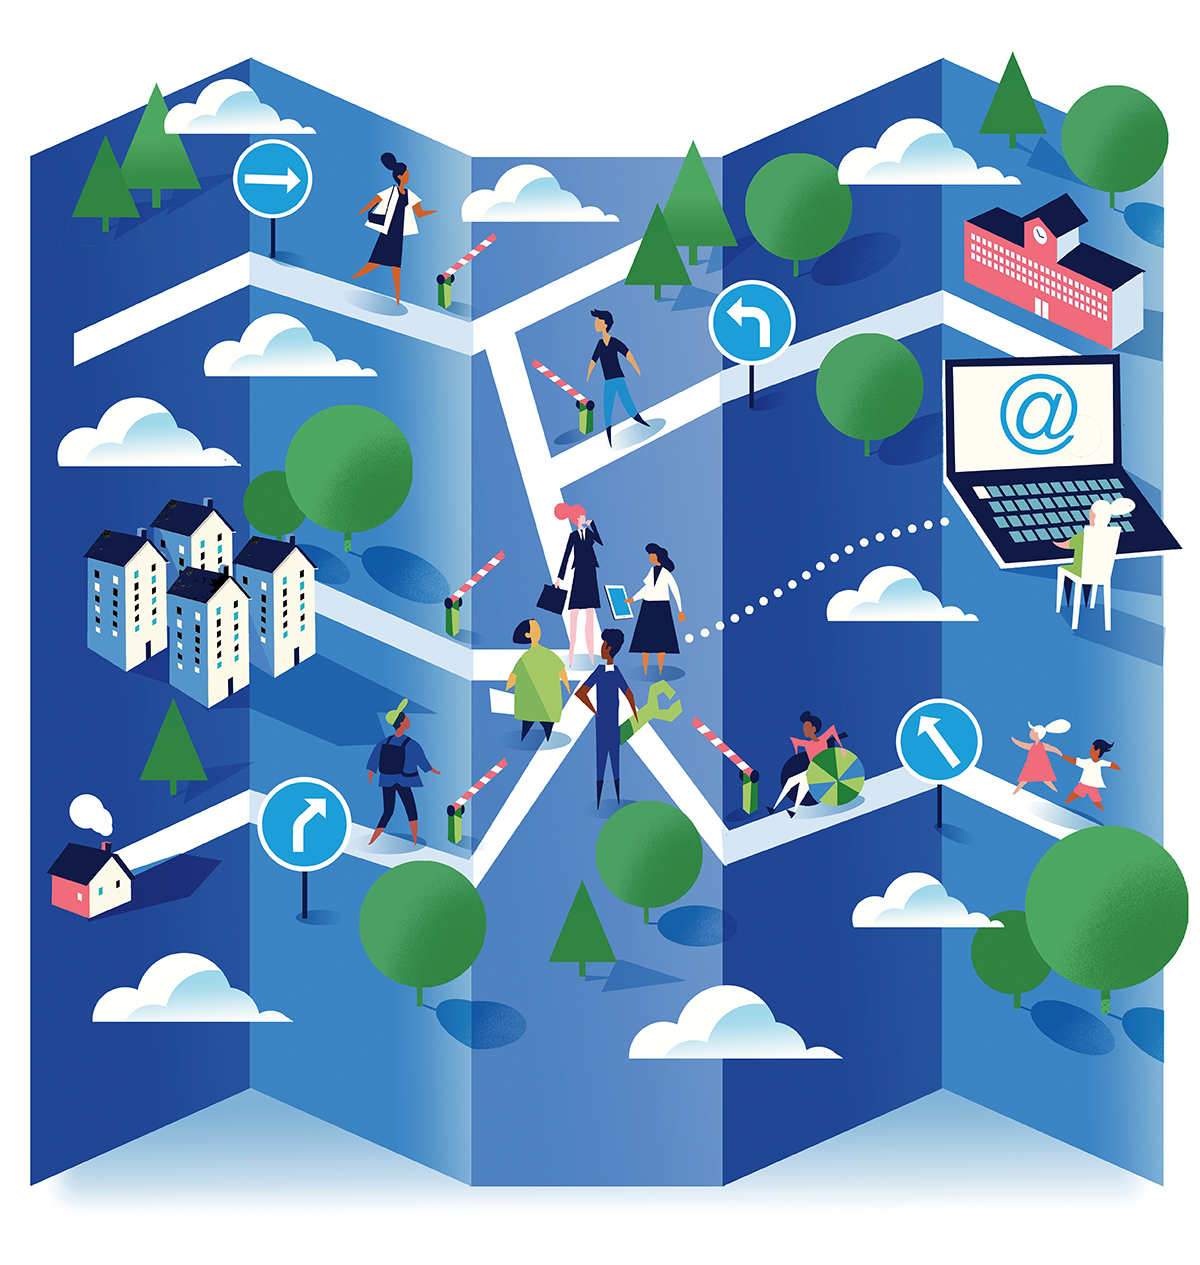 Illustration of a community with people in business attire meeting where the roads intersect.